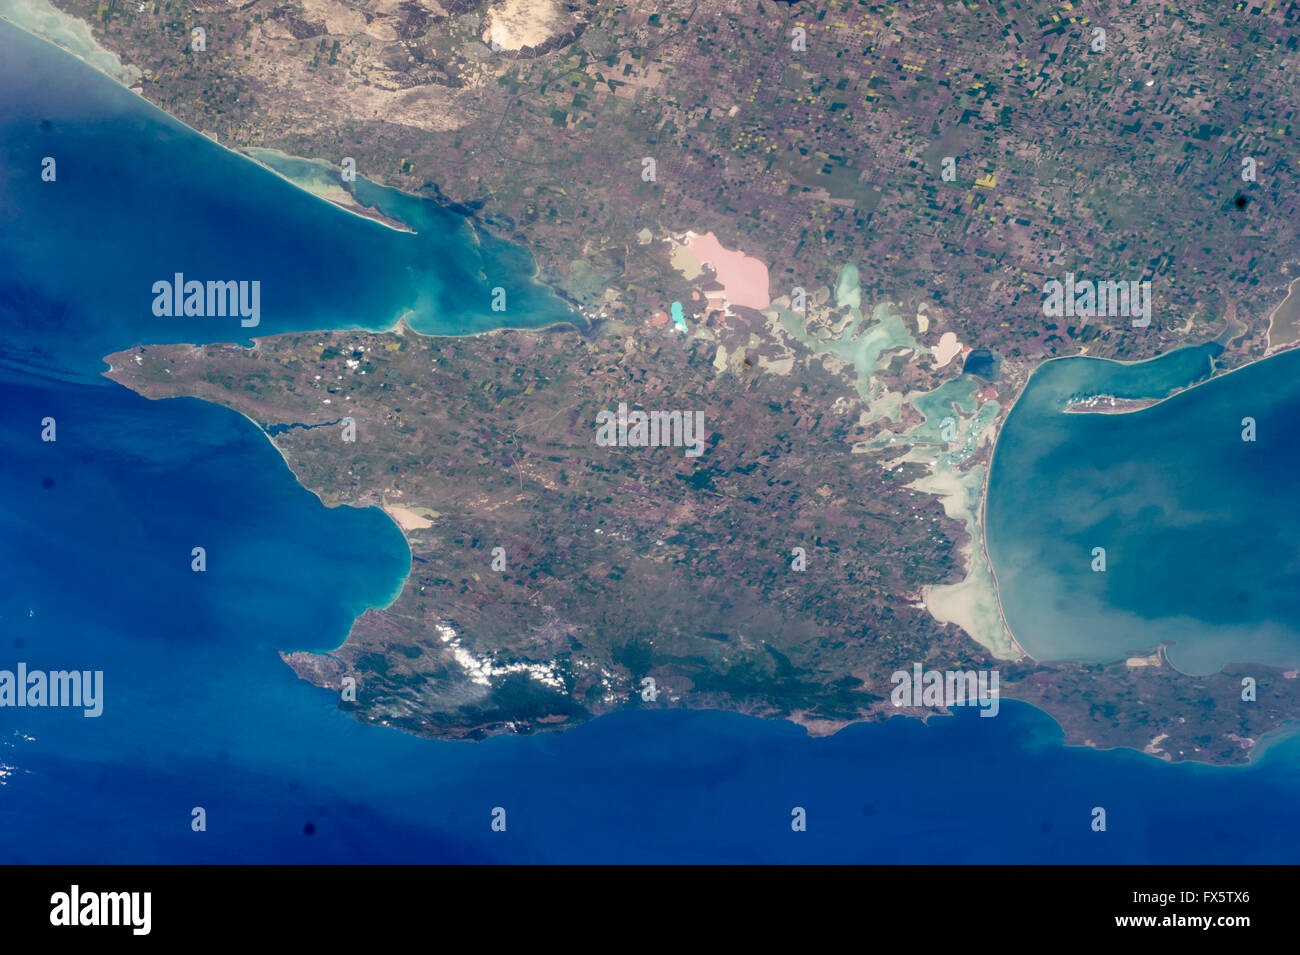 The diamond-shaped Crimean Peninsula that juts into the Black Sea seen from above by the astronauts on the International - Stock Image